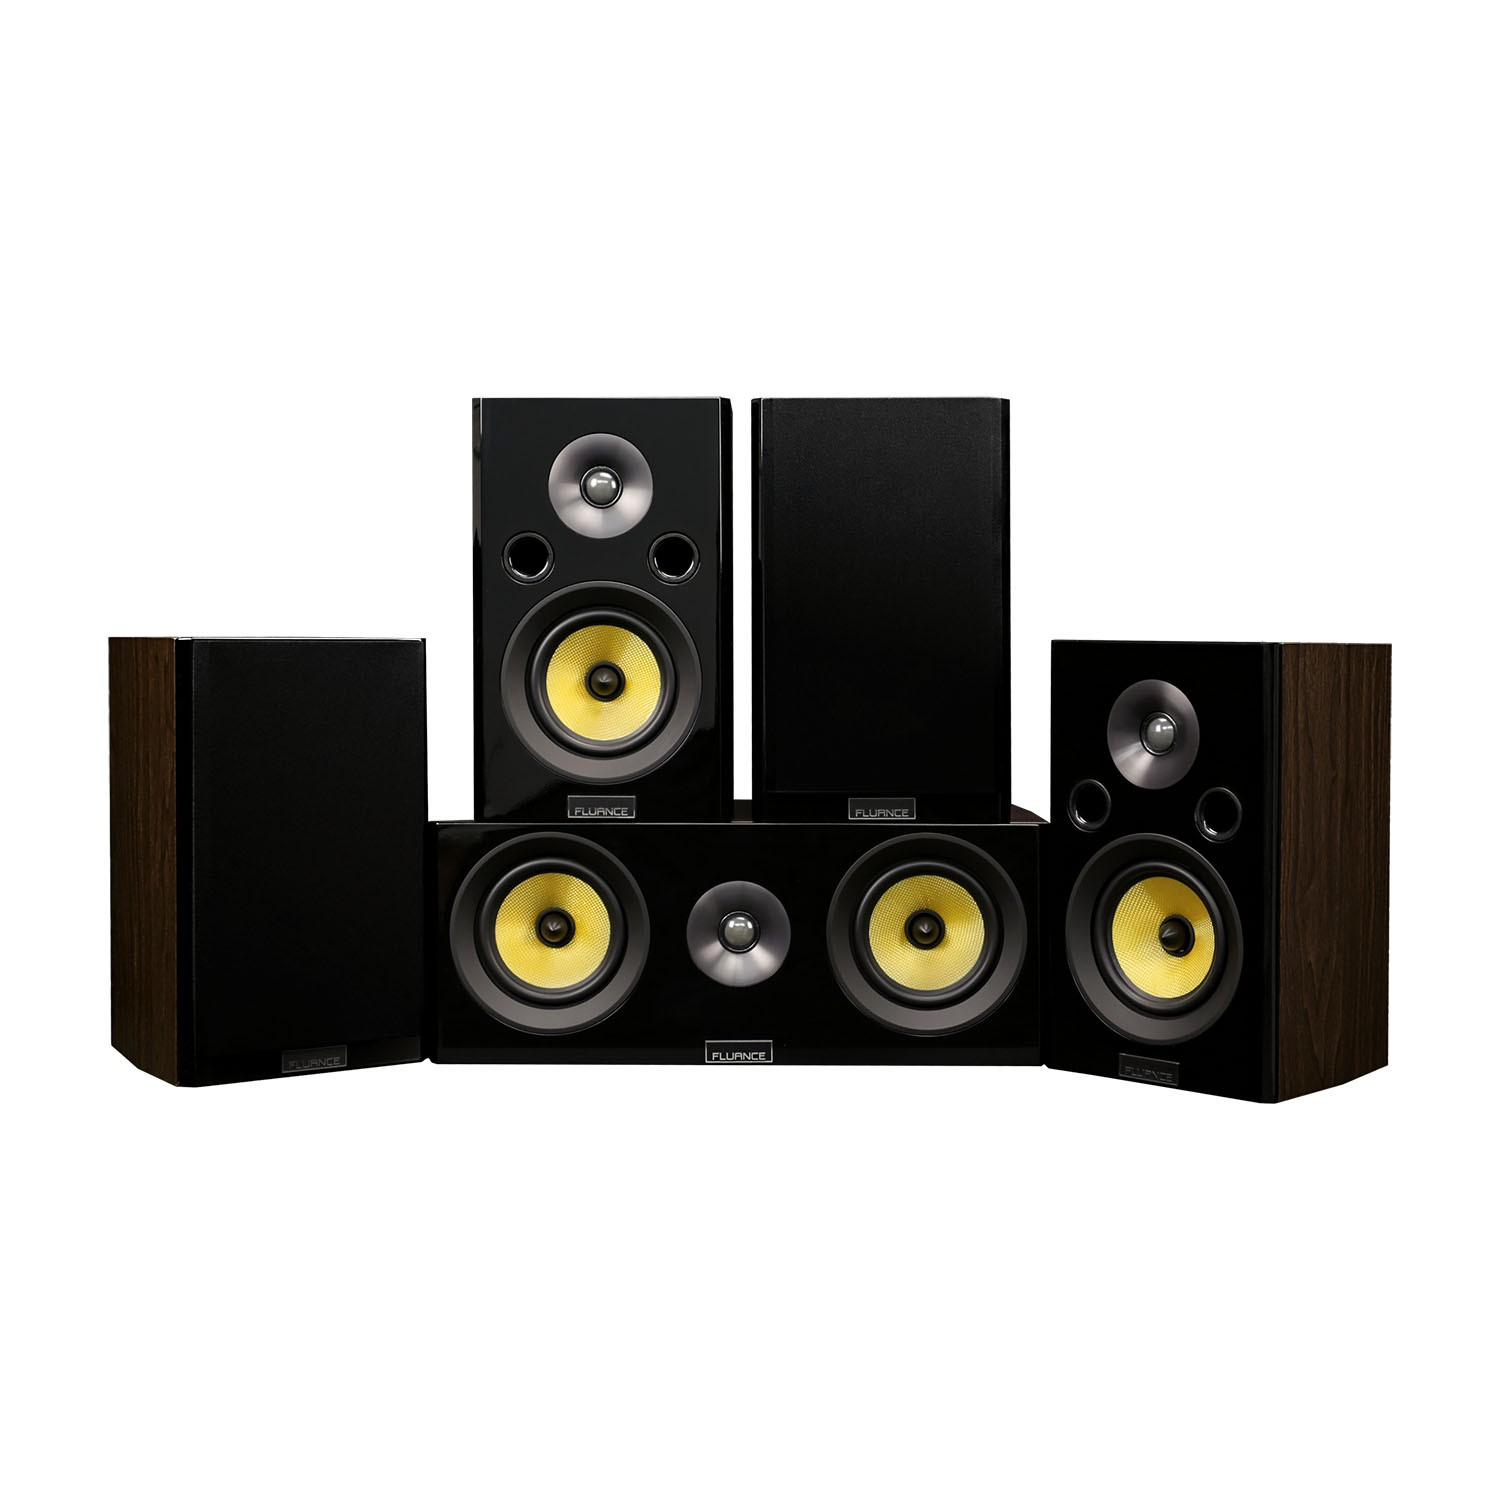 Signature Series Hi Fi 50 Home Theater Speaker System With Bookshelf Speakers